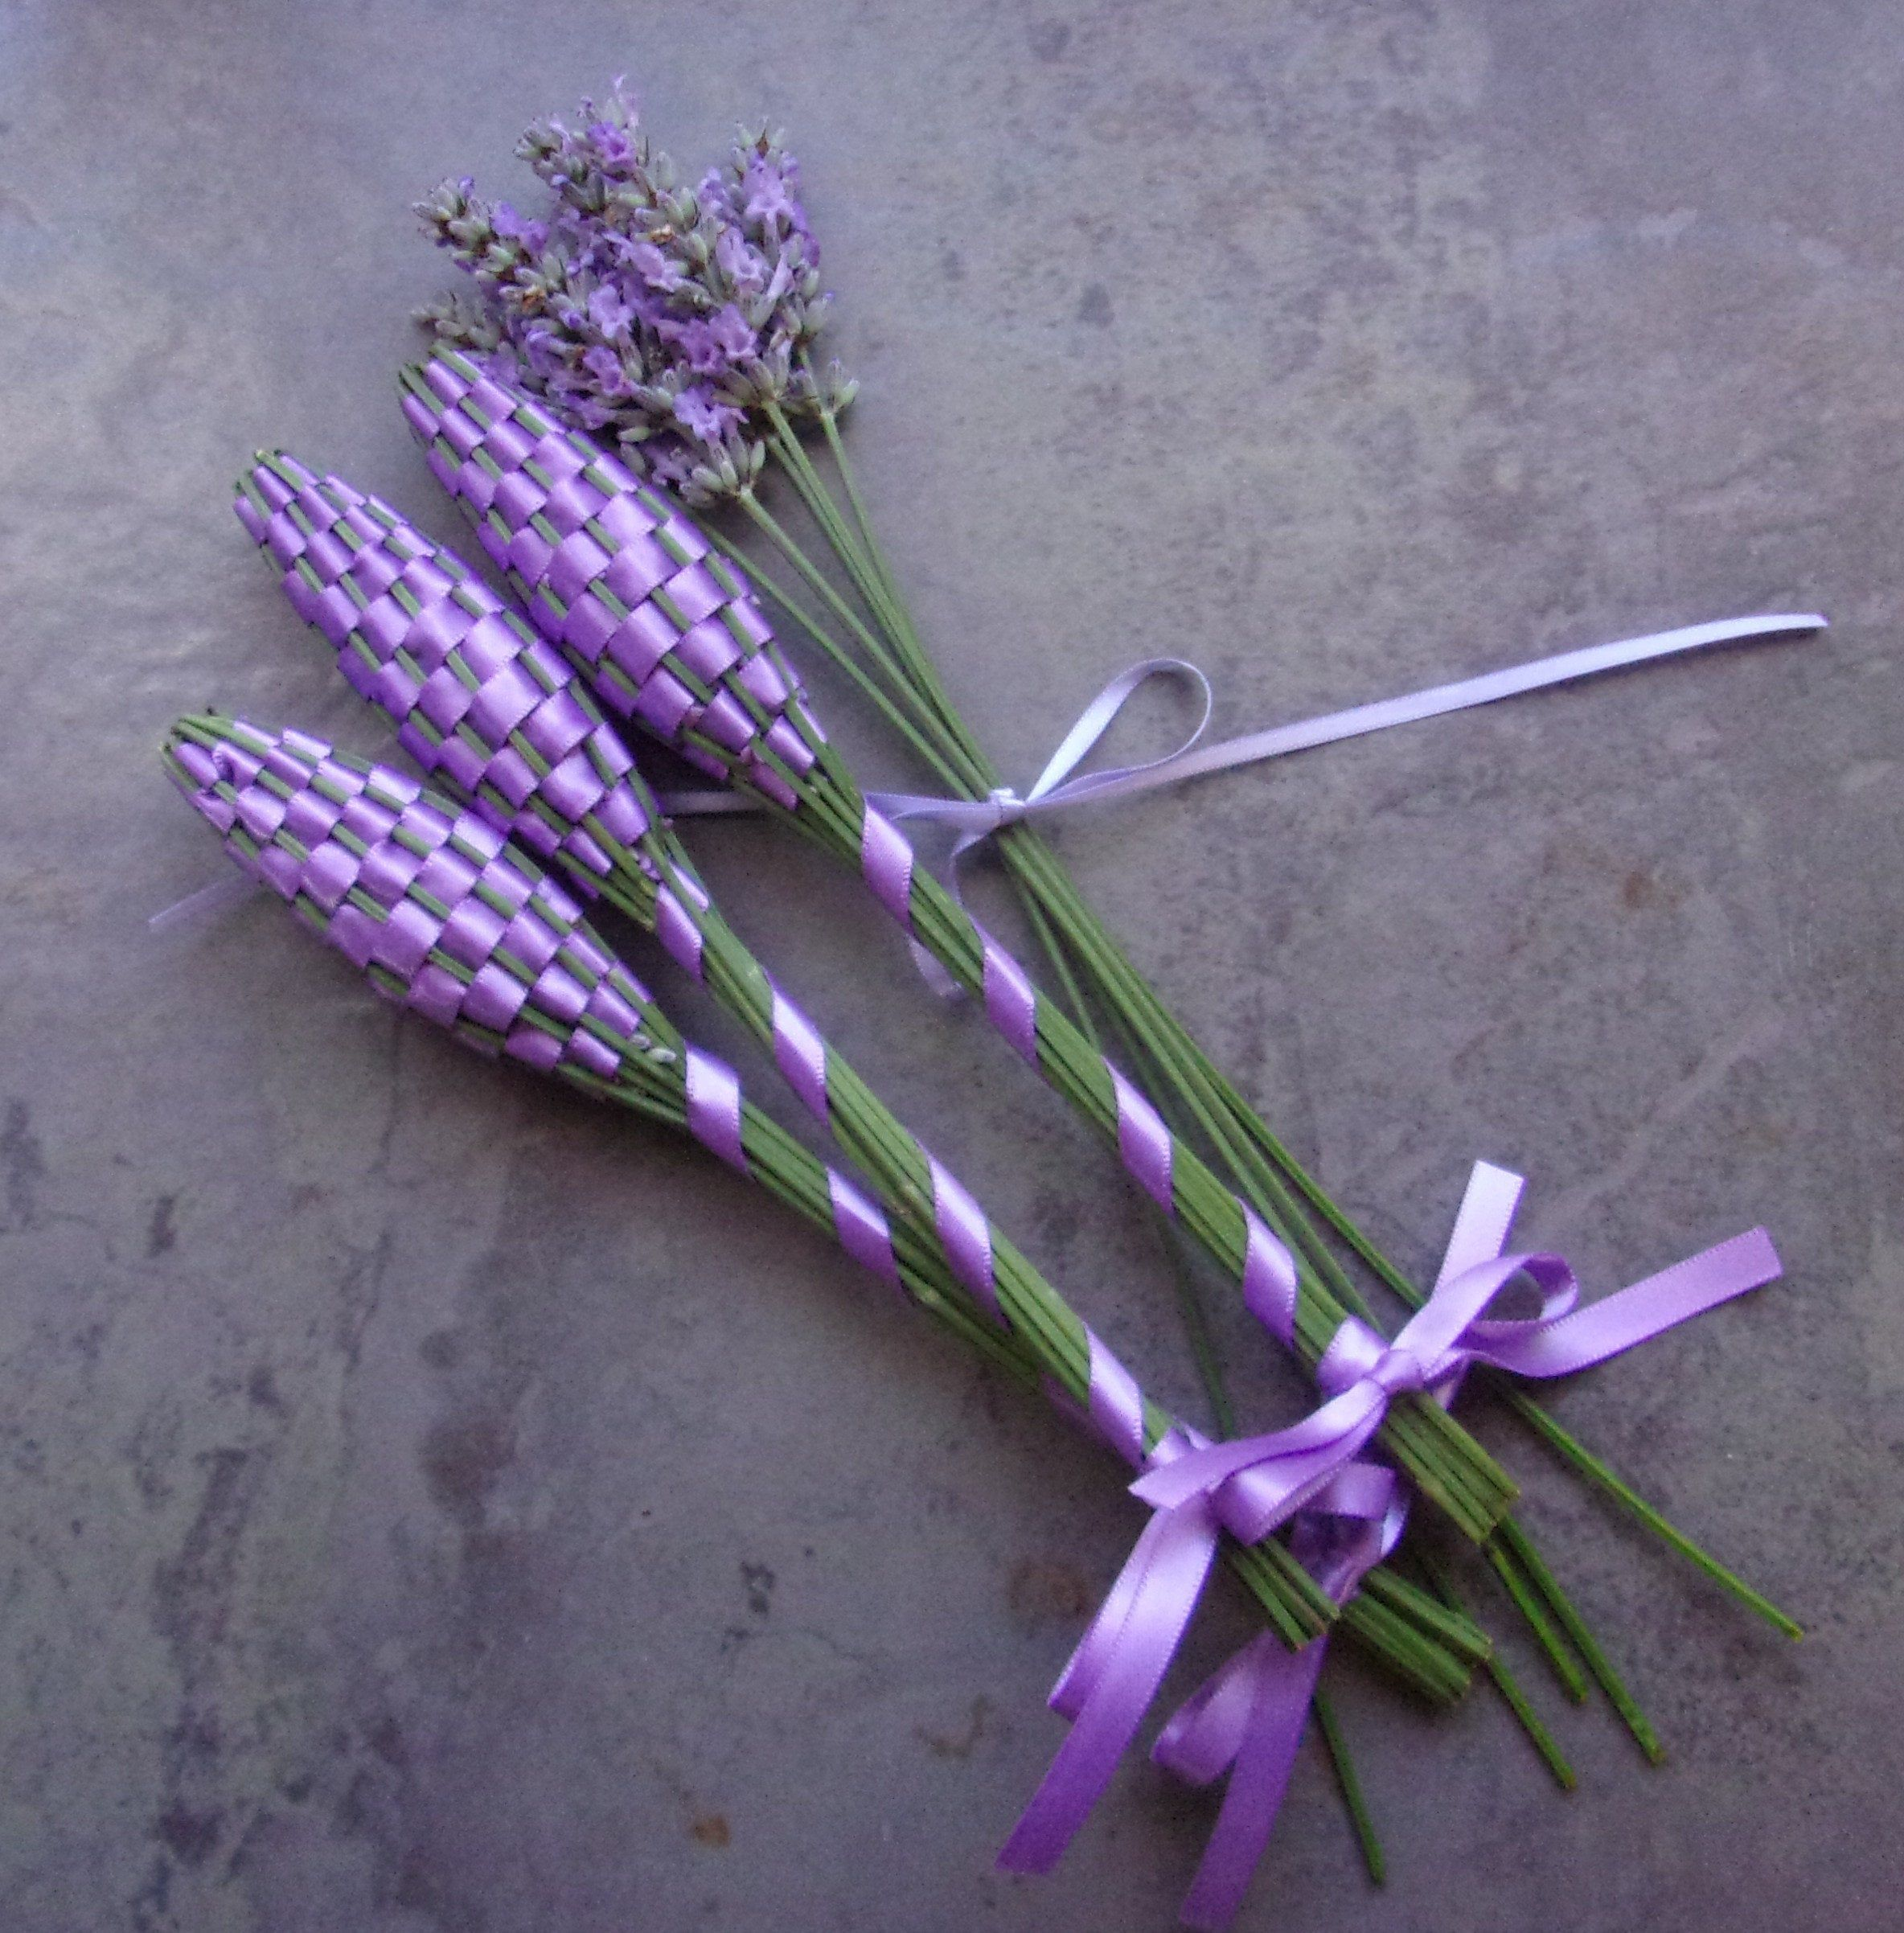 Lavender Filled Wands 3 Fragrant Dried Flowers Lavender Satin Ribbon Small Batons Appreciation Gift Hospitality L Lavender Gifts Lavender Wands Dried Flowers